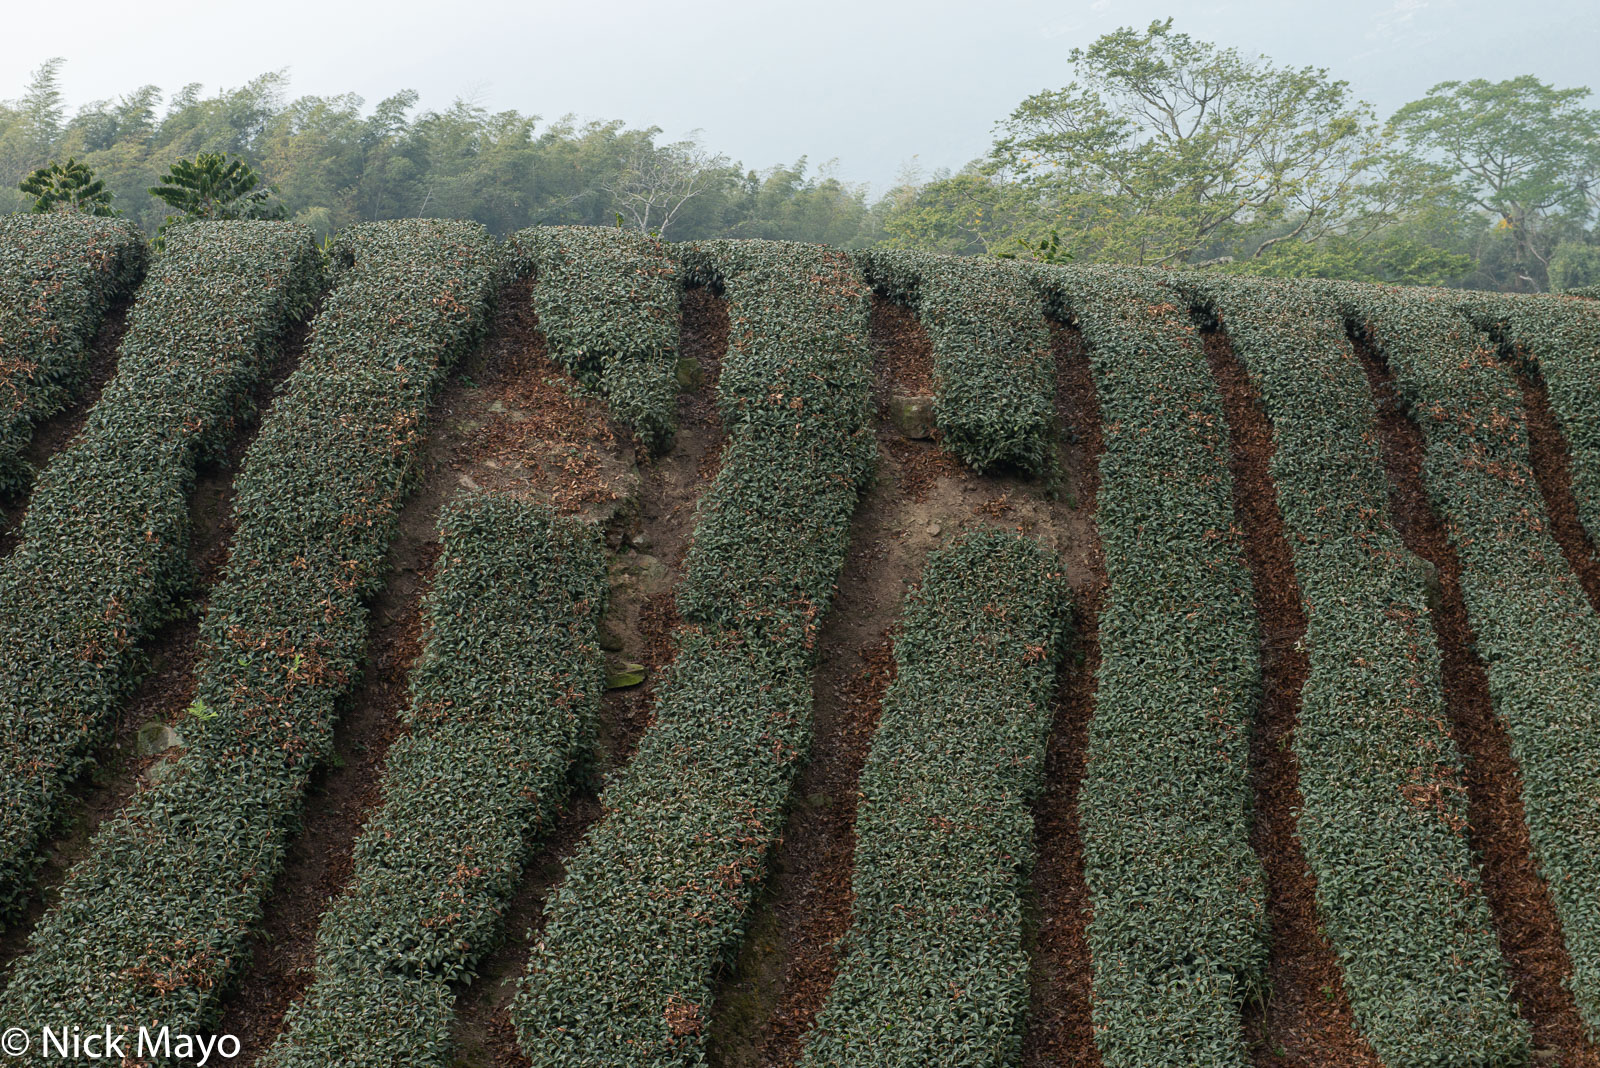 A recently harvested tea field at Jiaoliping in Chiayi County.